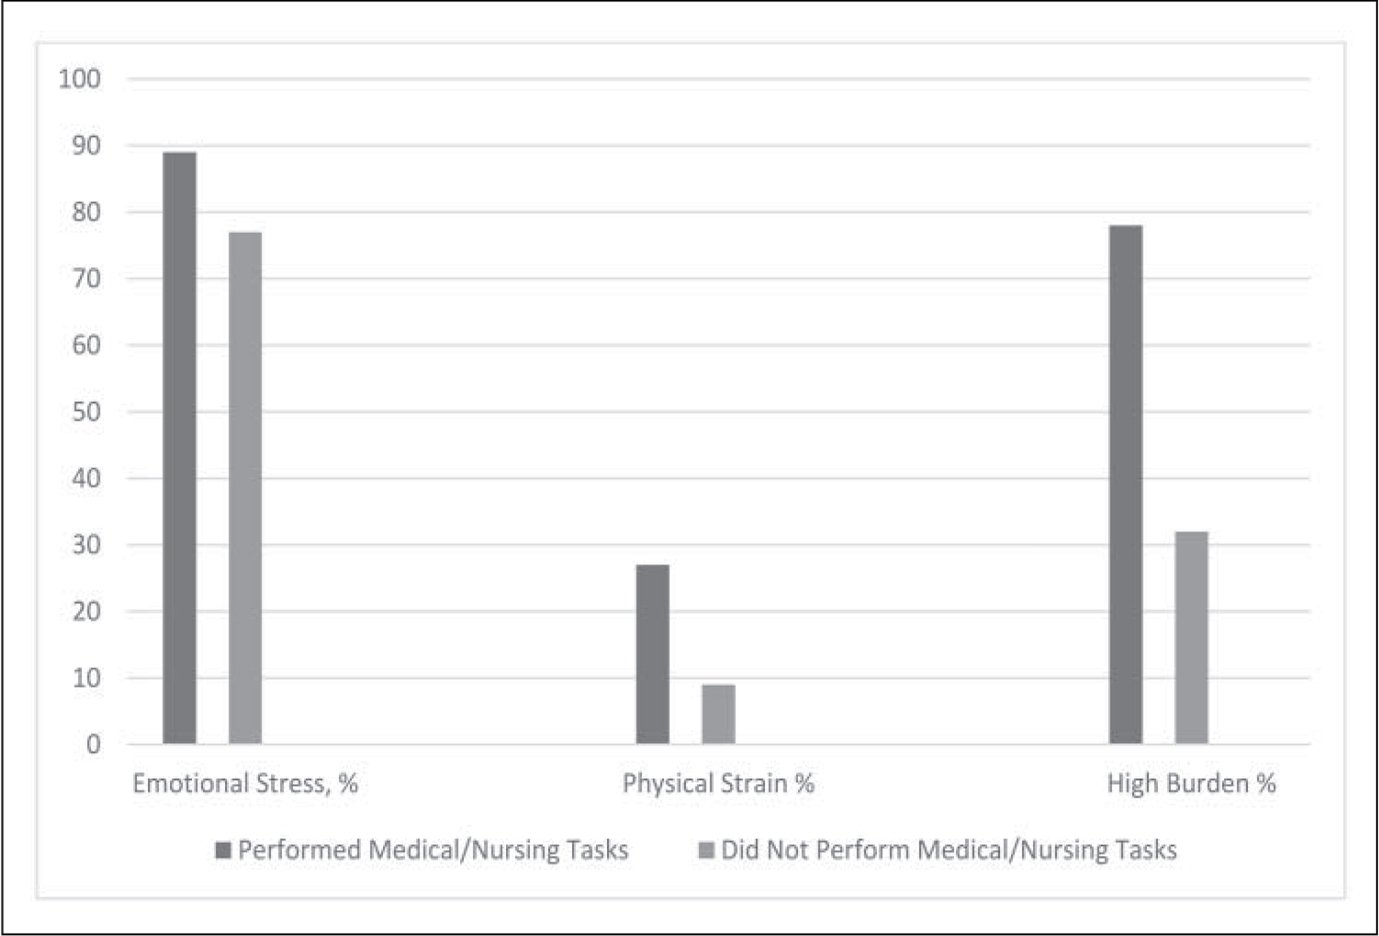 Report of emotional stress, physical strain, and burden of care among U.S. caregivers by performance of medical/nursing tasks.